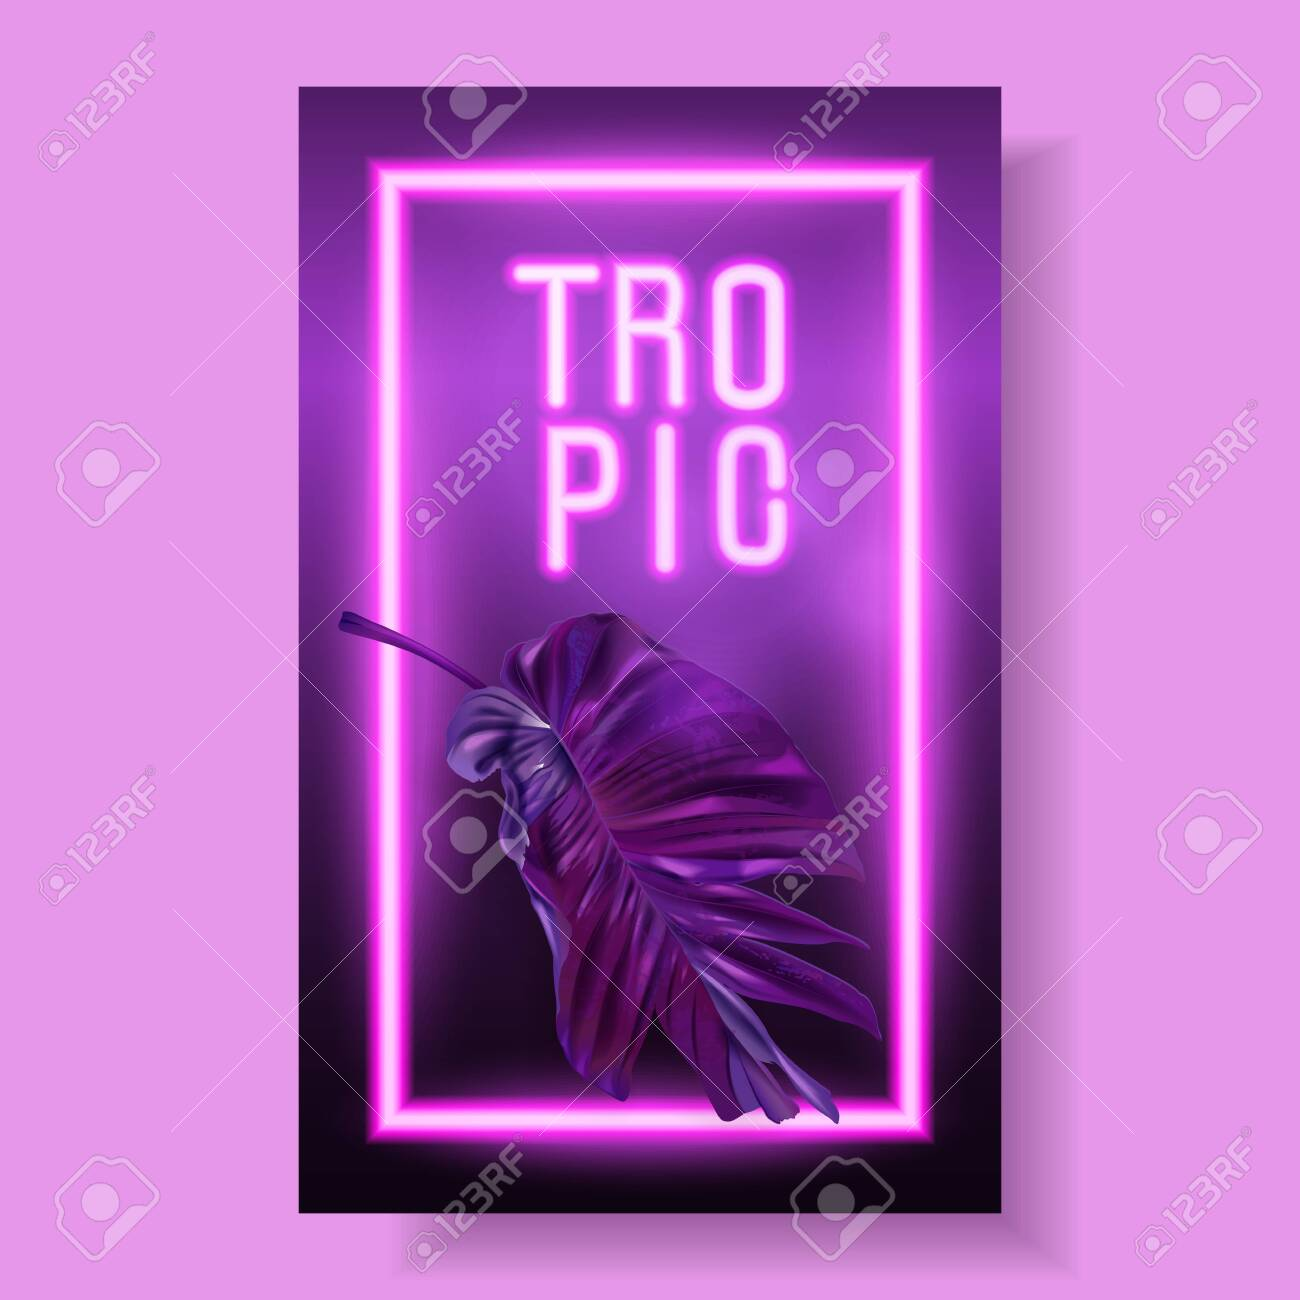 Vector banner with purple tropical leaves and pink neon letters on dark background. Exotic design for night music party, beach event invitation, dance party, summer sale, cosmetics flyer - 139833880